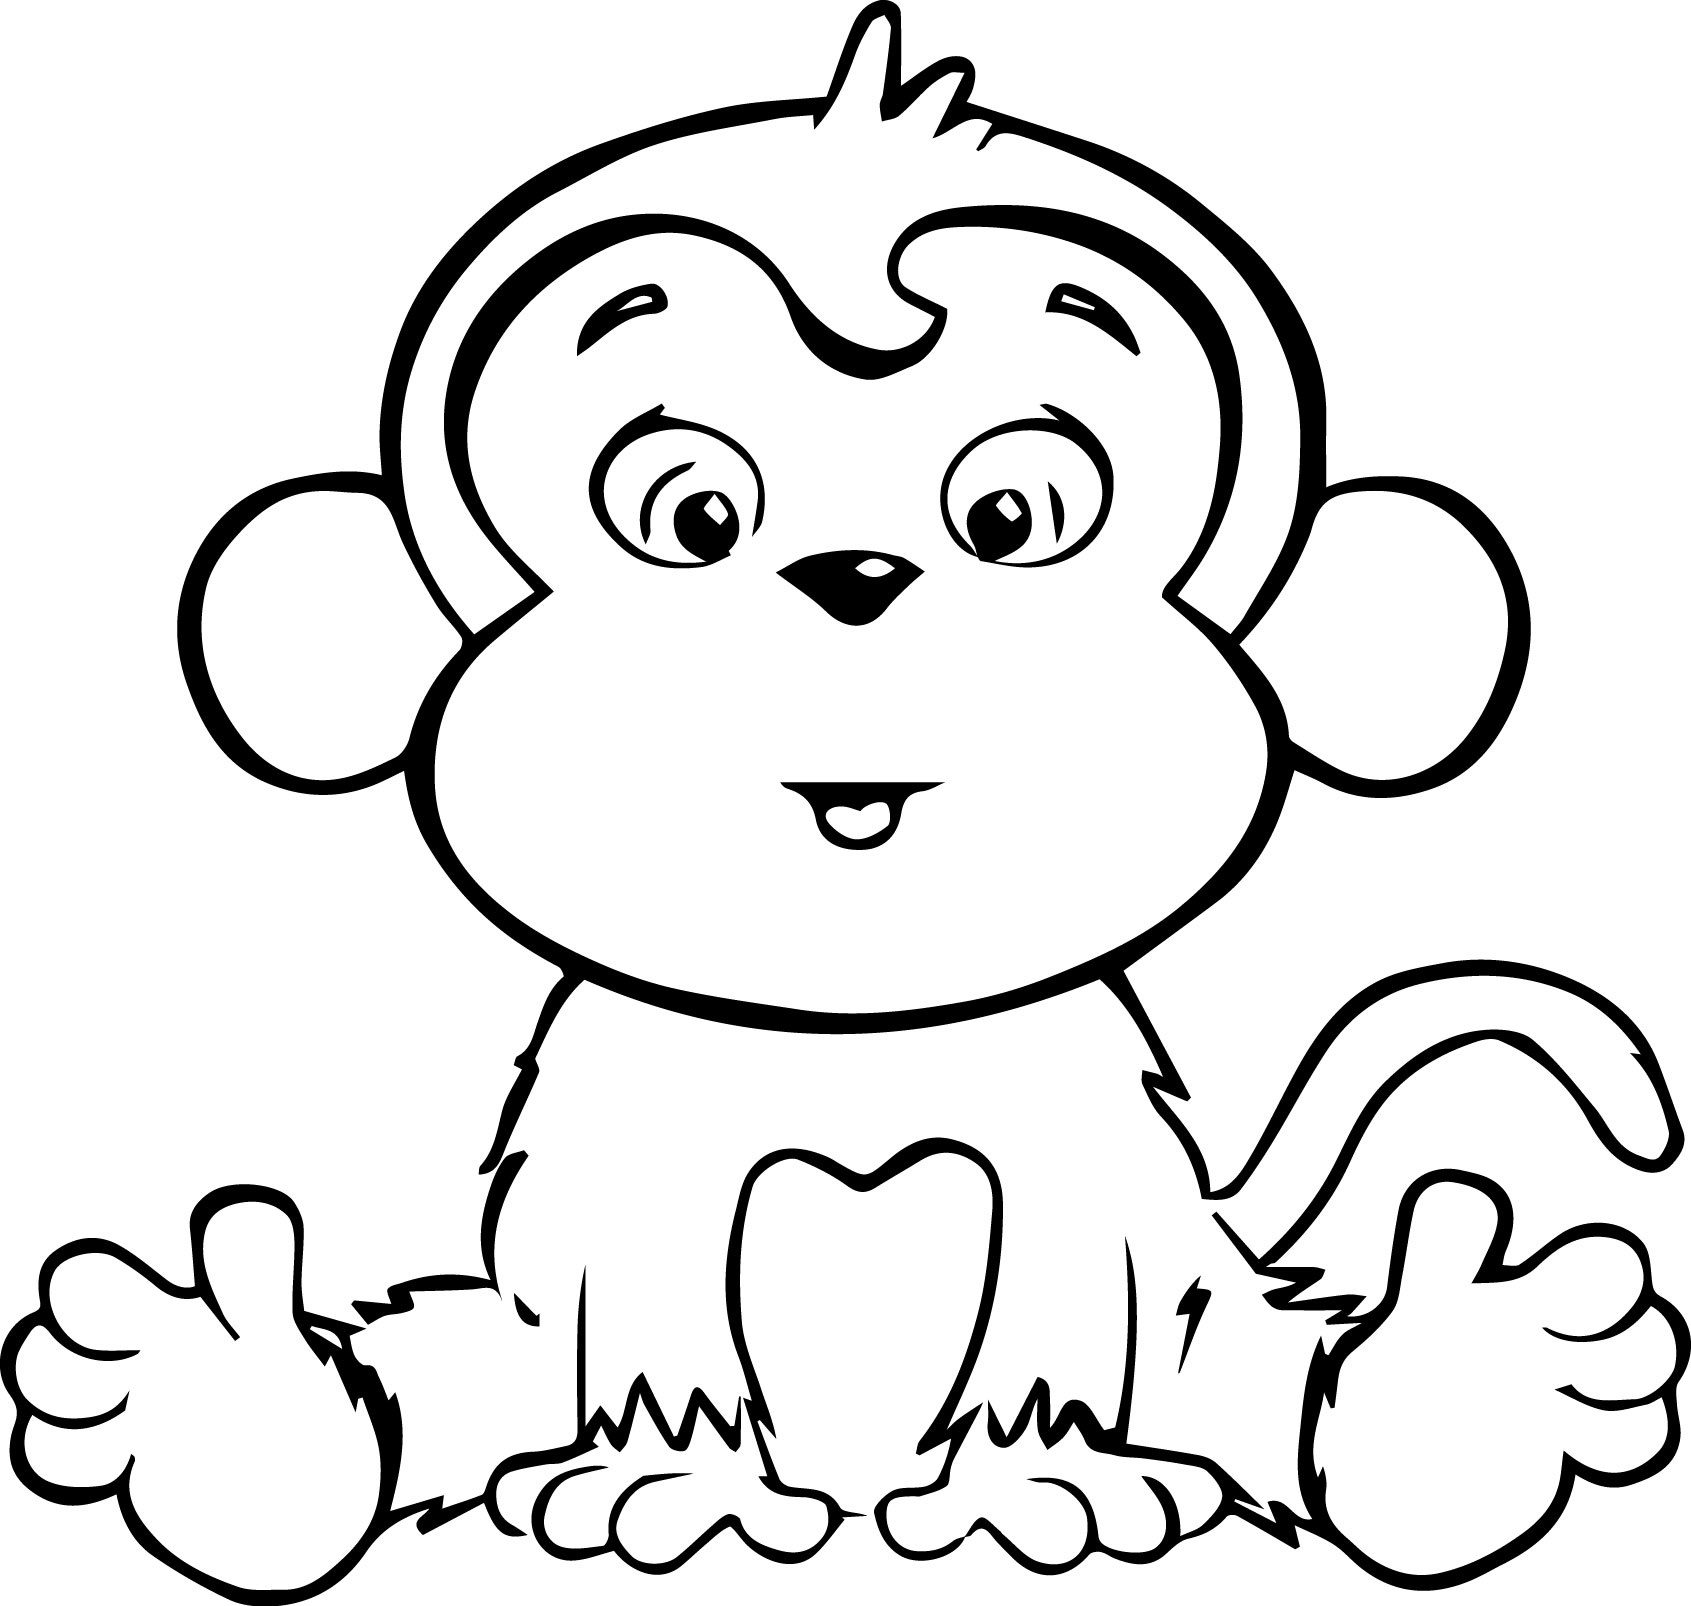 coloring monkey clipart monkey outline clipartioncom coloring monkey clipart